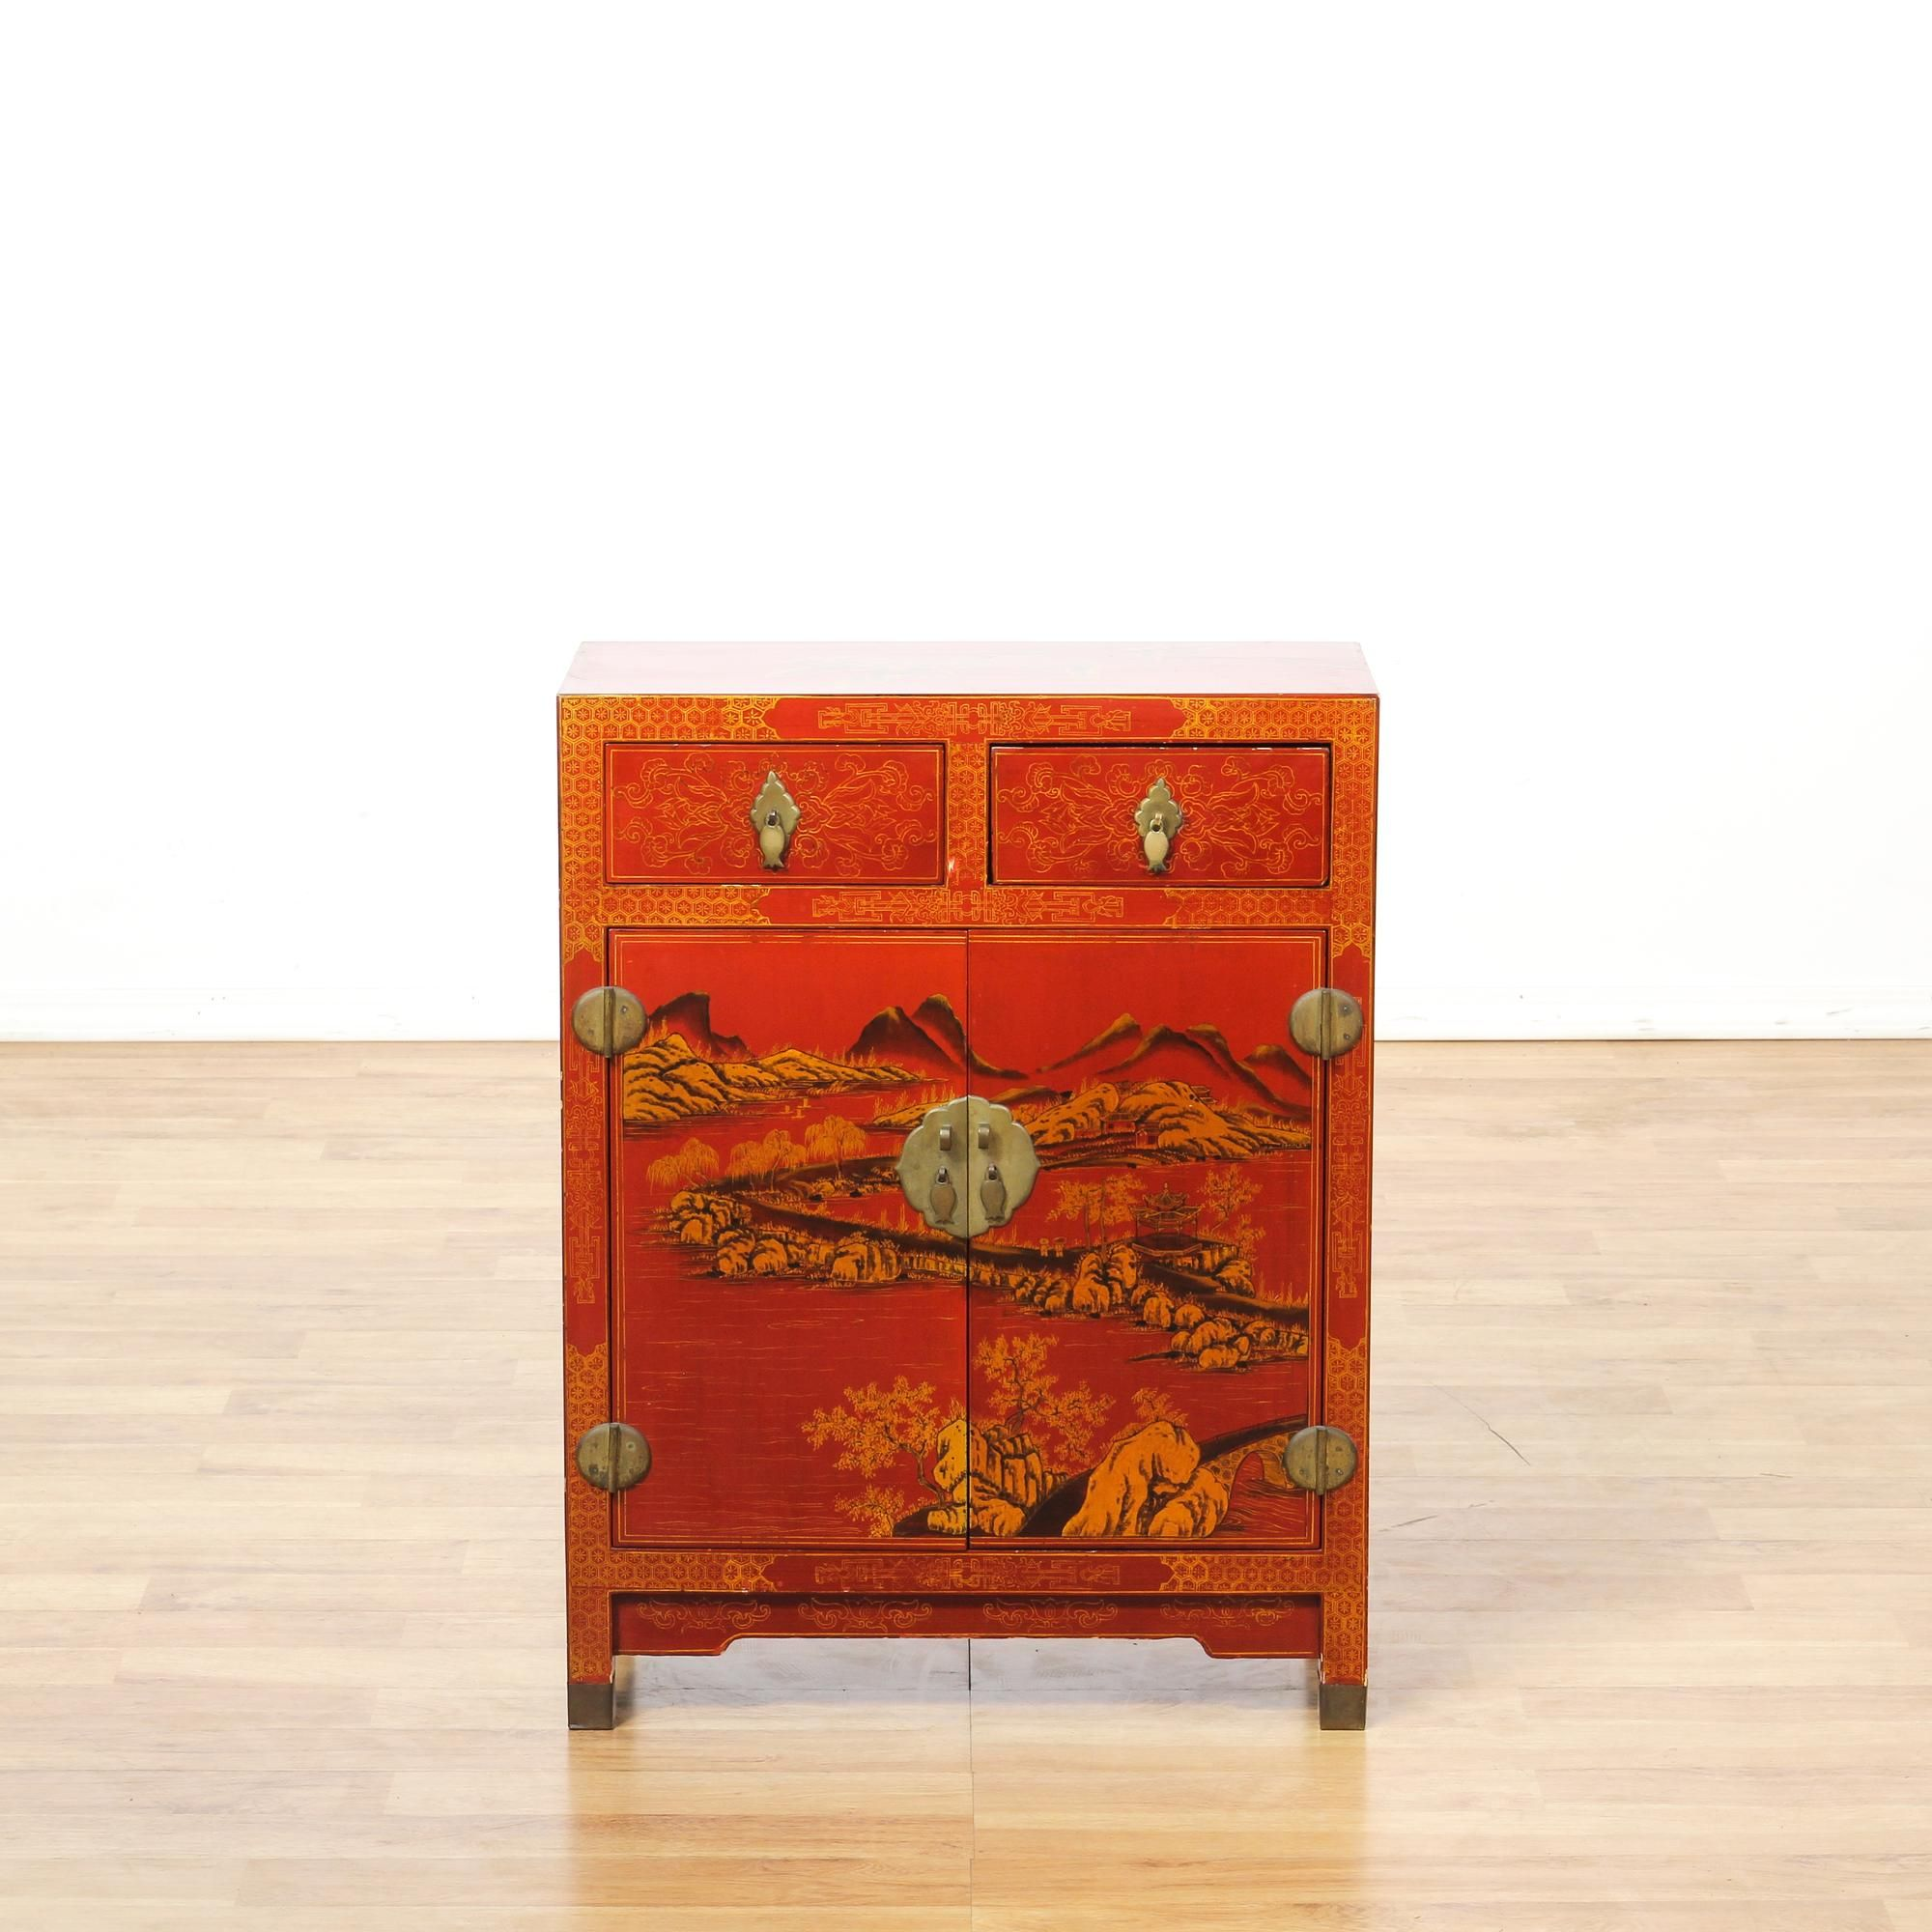 This Asian Bar Cabinet Is Featured In A Solid Wood With A Glossy Vibrant  Red Lacquered Finish And Shiny Brass Hardware. This Chest Has A Large  Interior ...